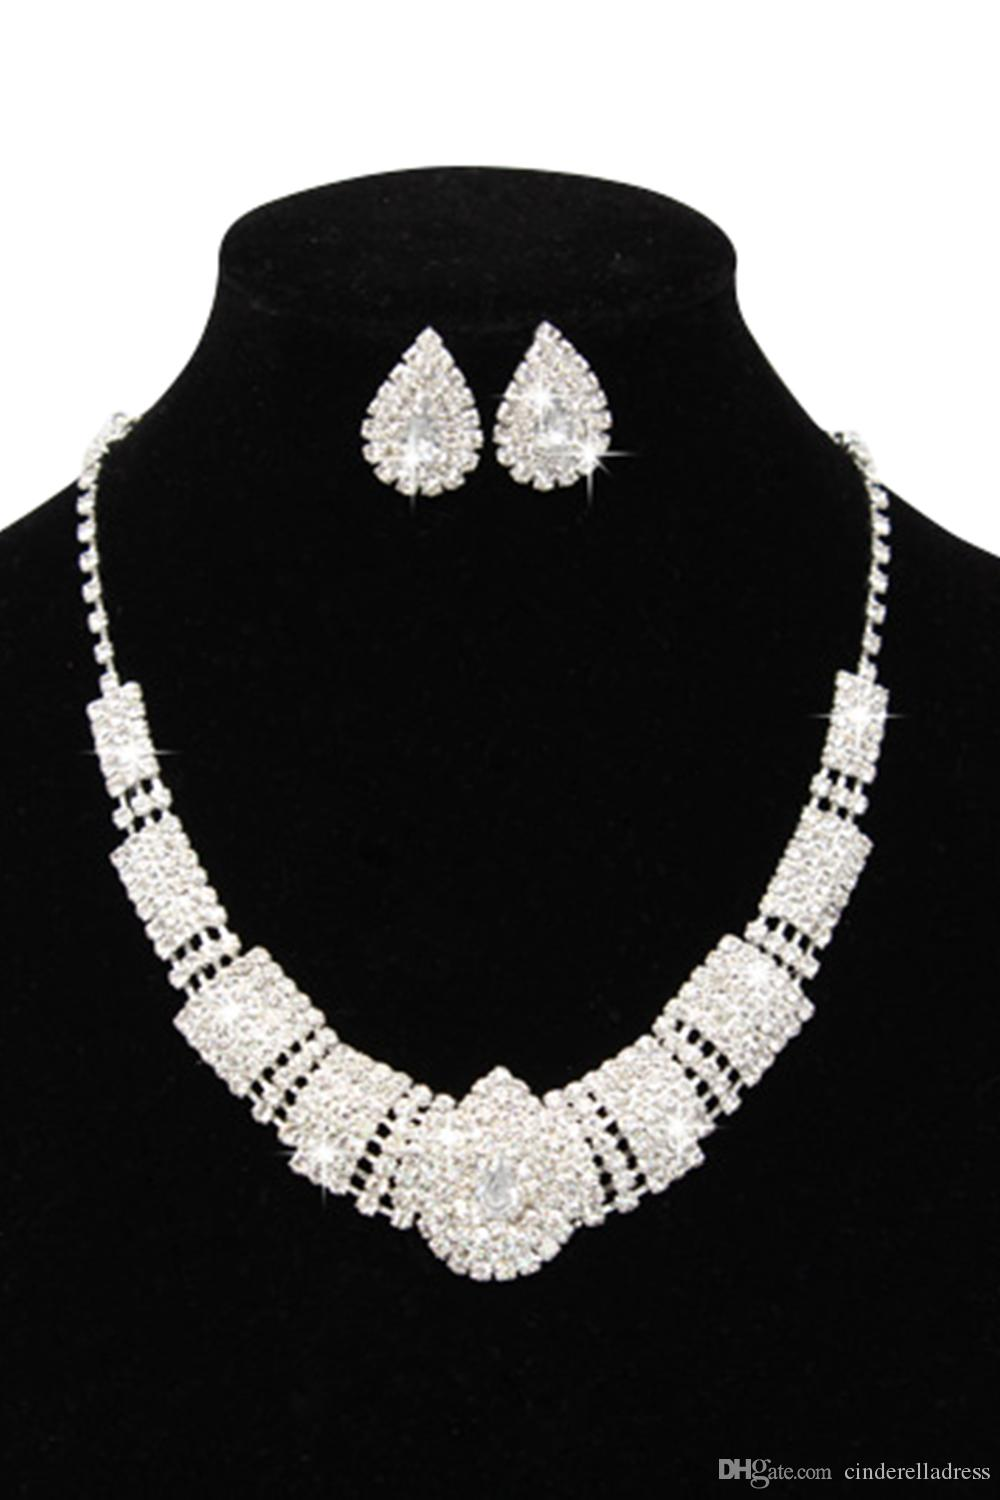 2017 Luxury Rhinestone Bridal Accessories Wedding Jewelery Sets Necklace Earrings Accessories Two Pieces Cheap Fashion Style Hot CPA797